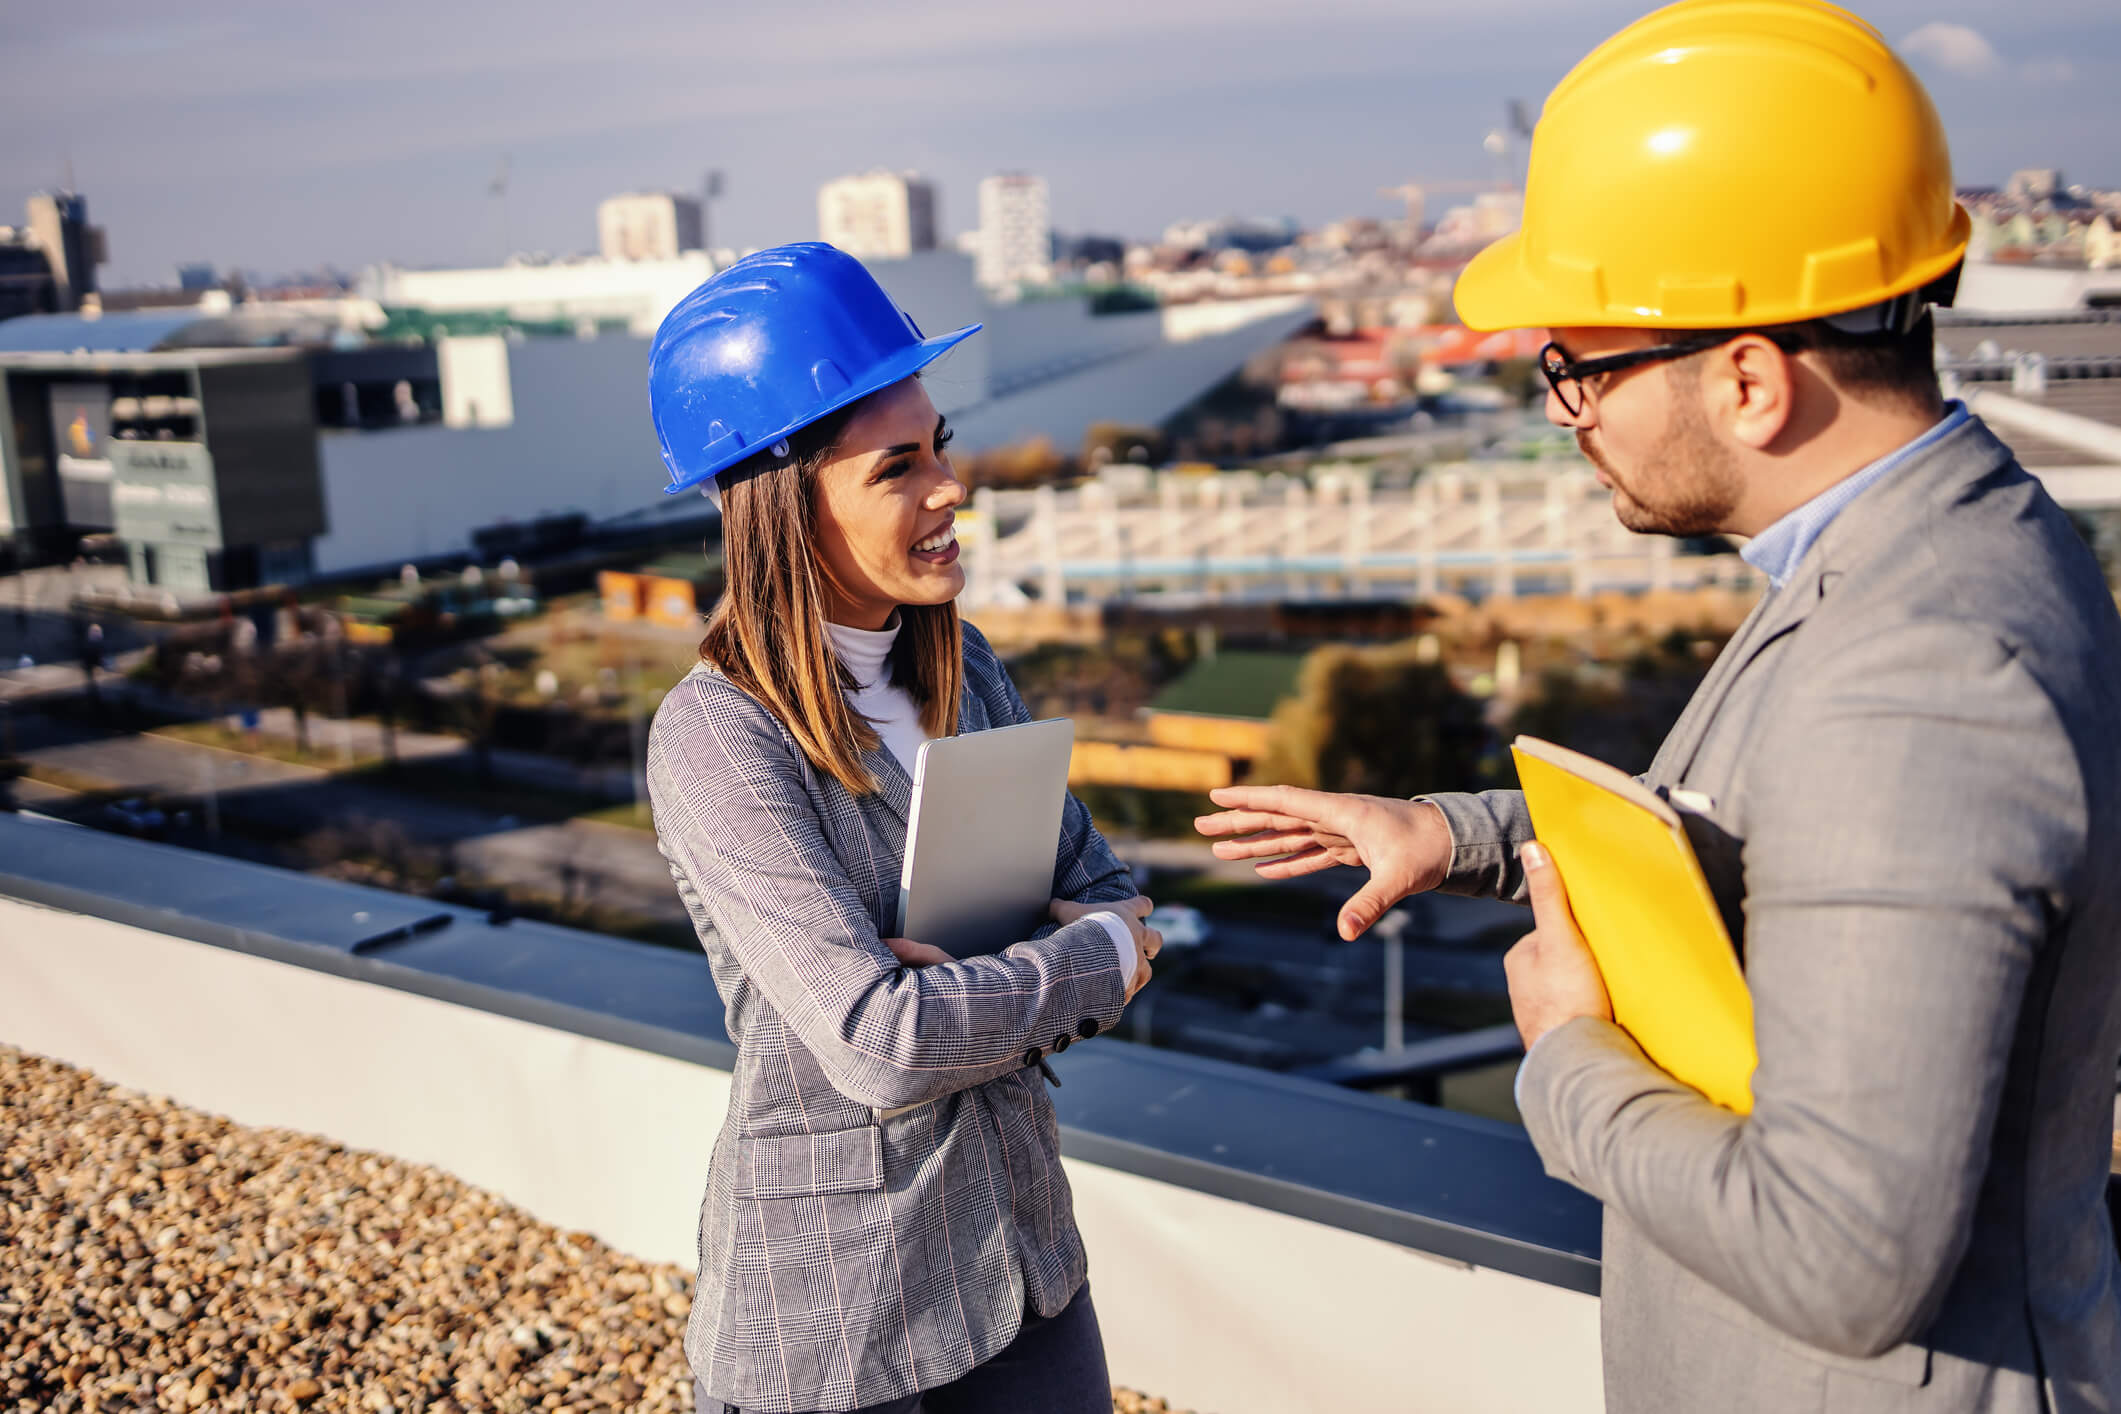 Commercial Roofers discussing Quote